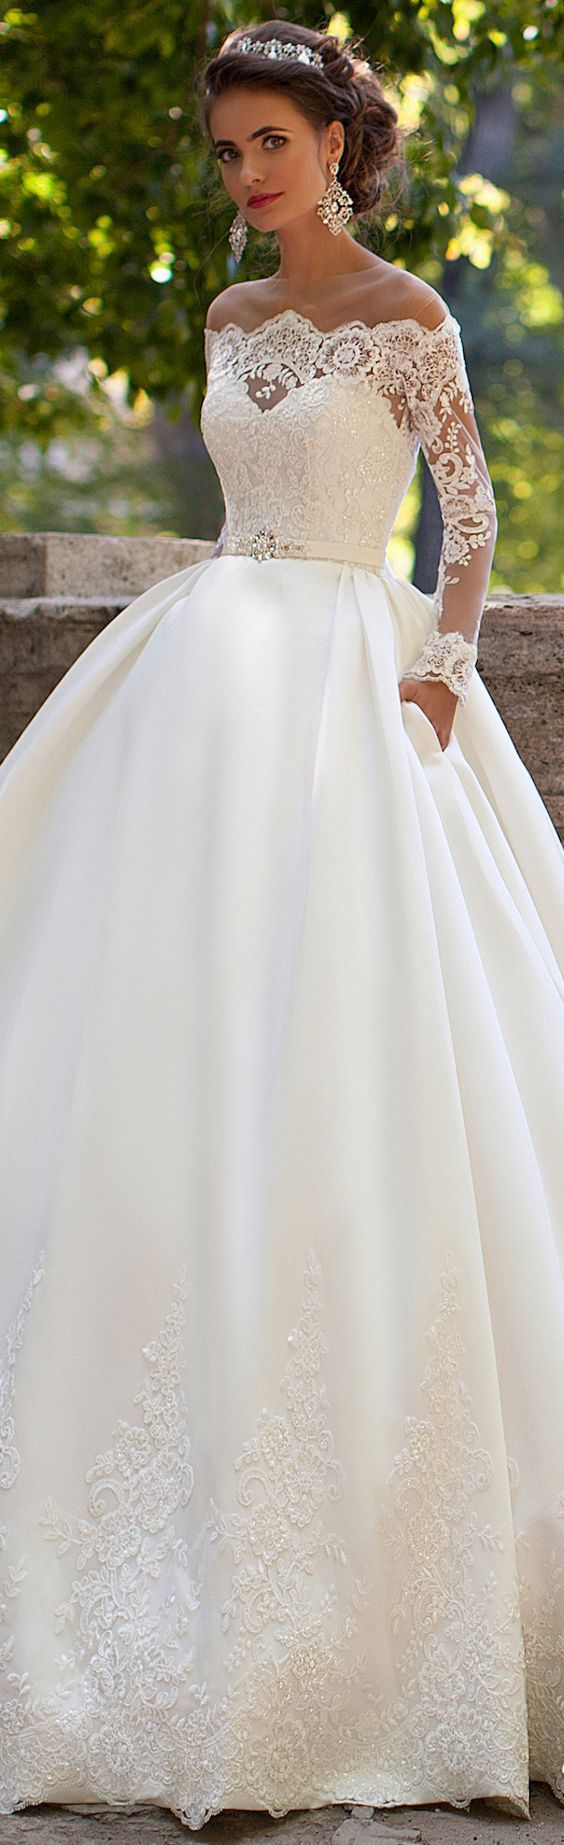 stunning long sleeve wedding dresses wedding ideas wedding